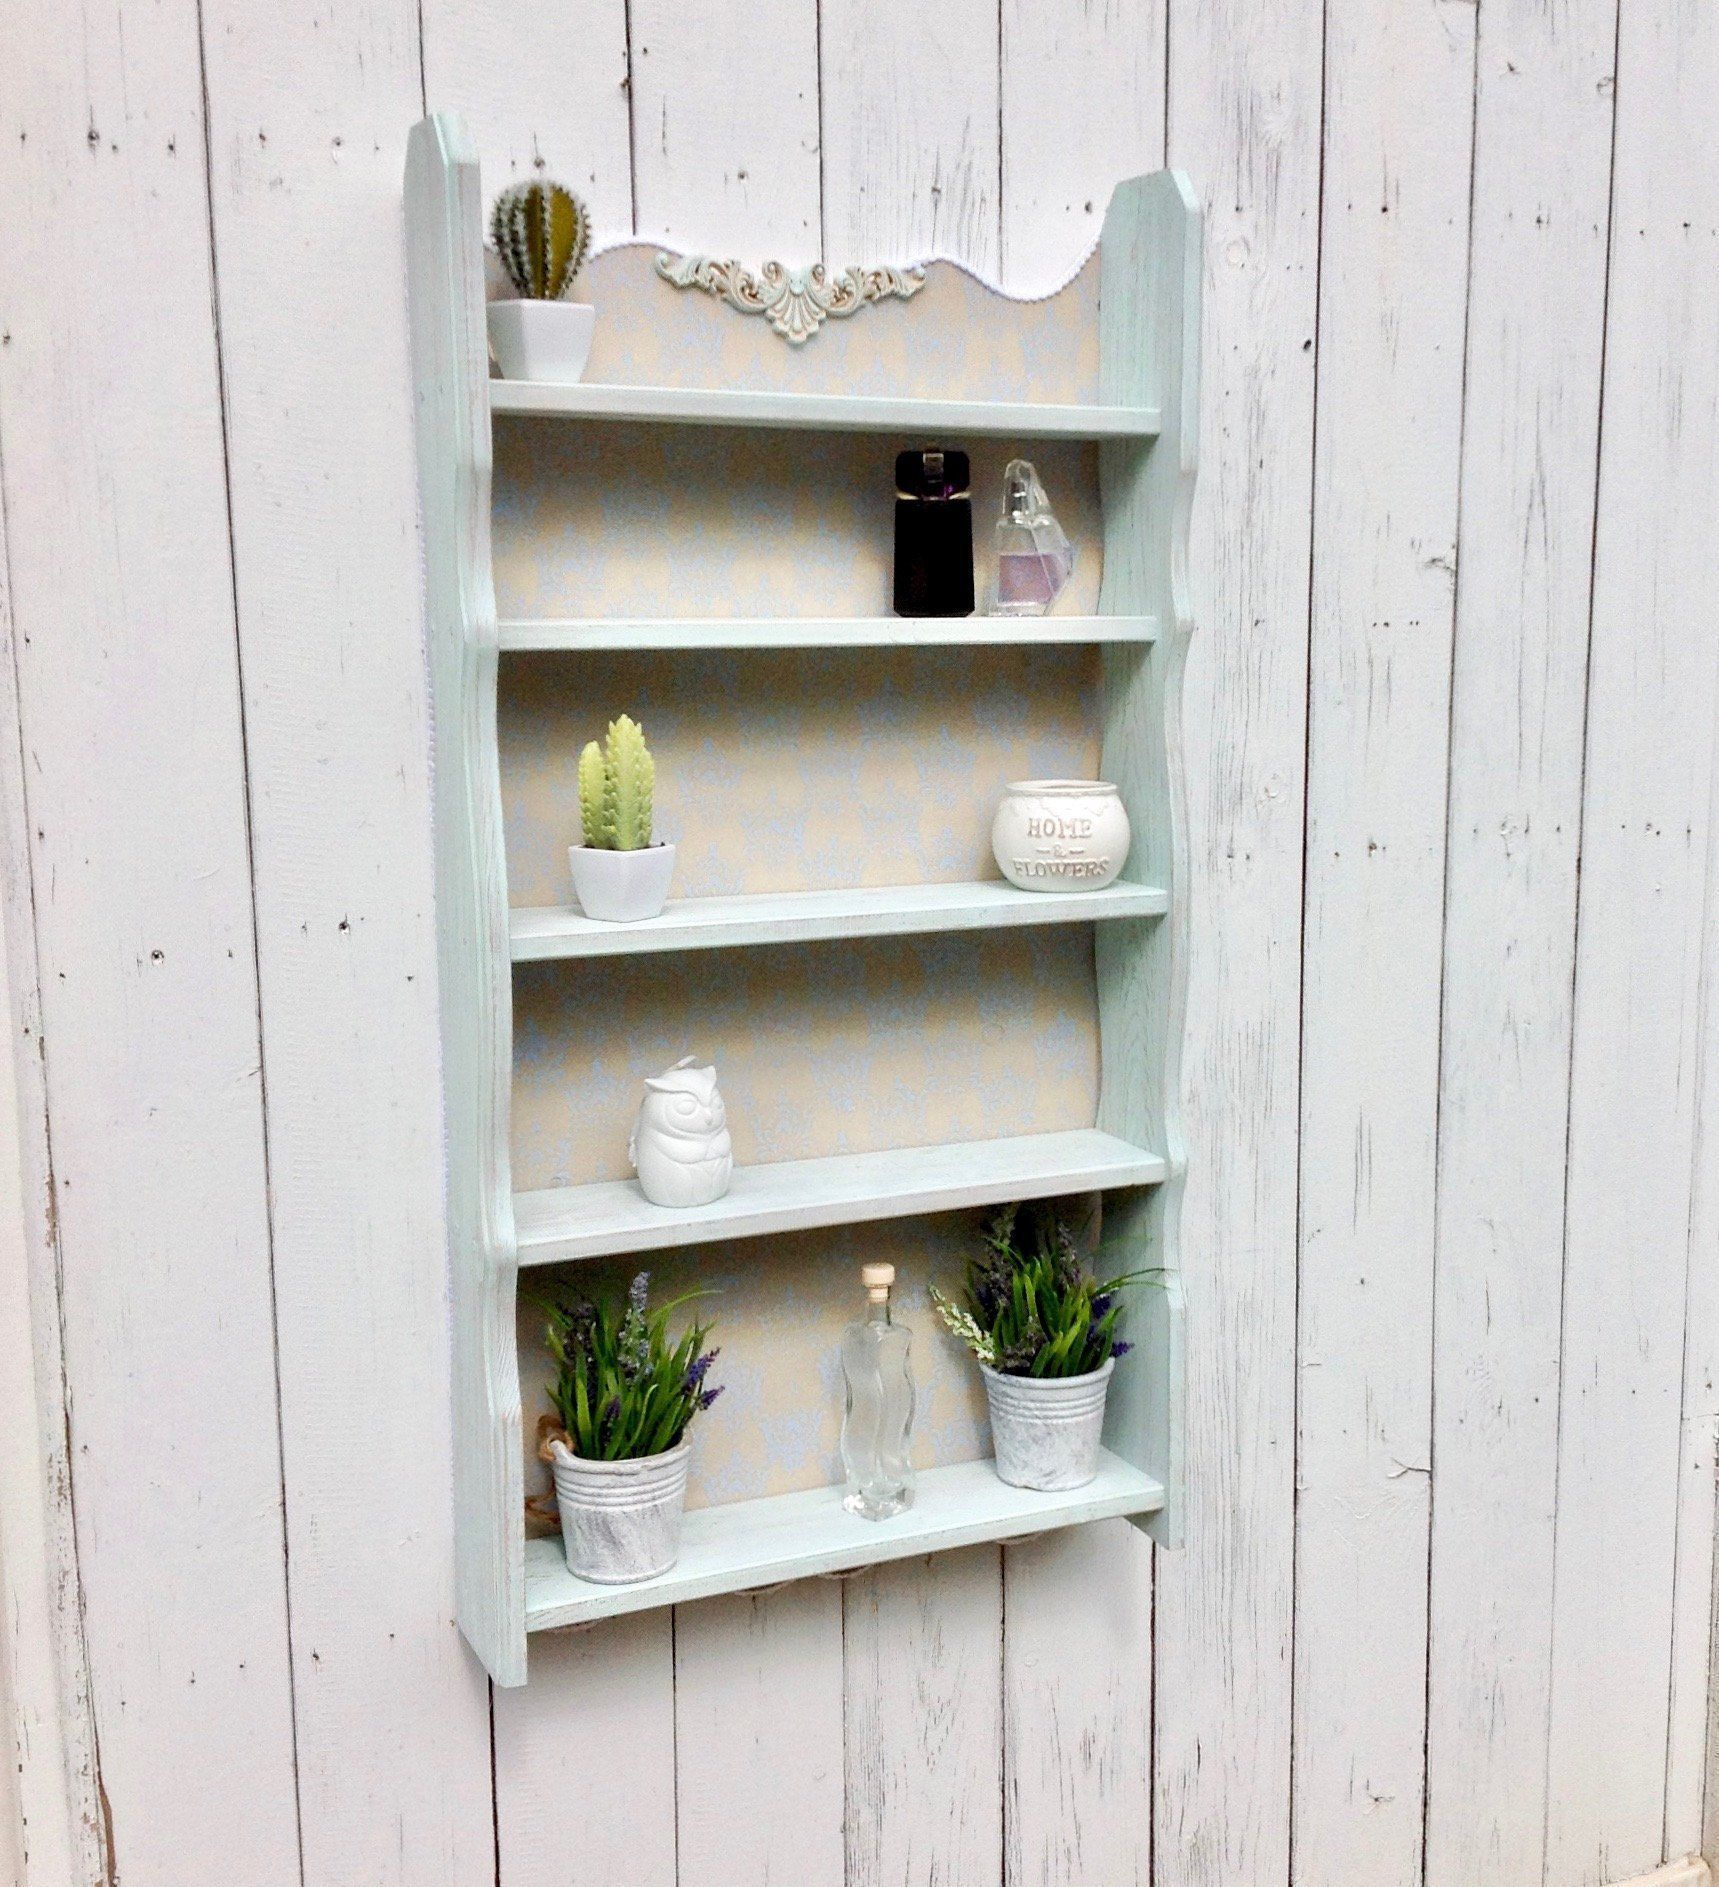 Wall Shelf Unit Open Shelving Curio Cabinet Wooden Display Cabinet Shabby Chic Shelves Shabby Chic Shelves Wall Shelf Unit Wooden Display Cabinets